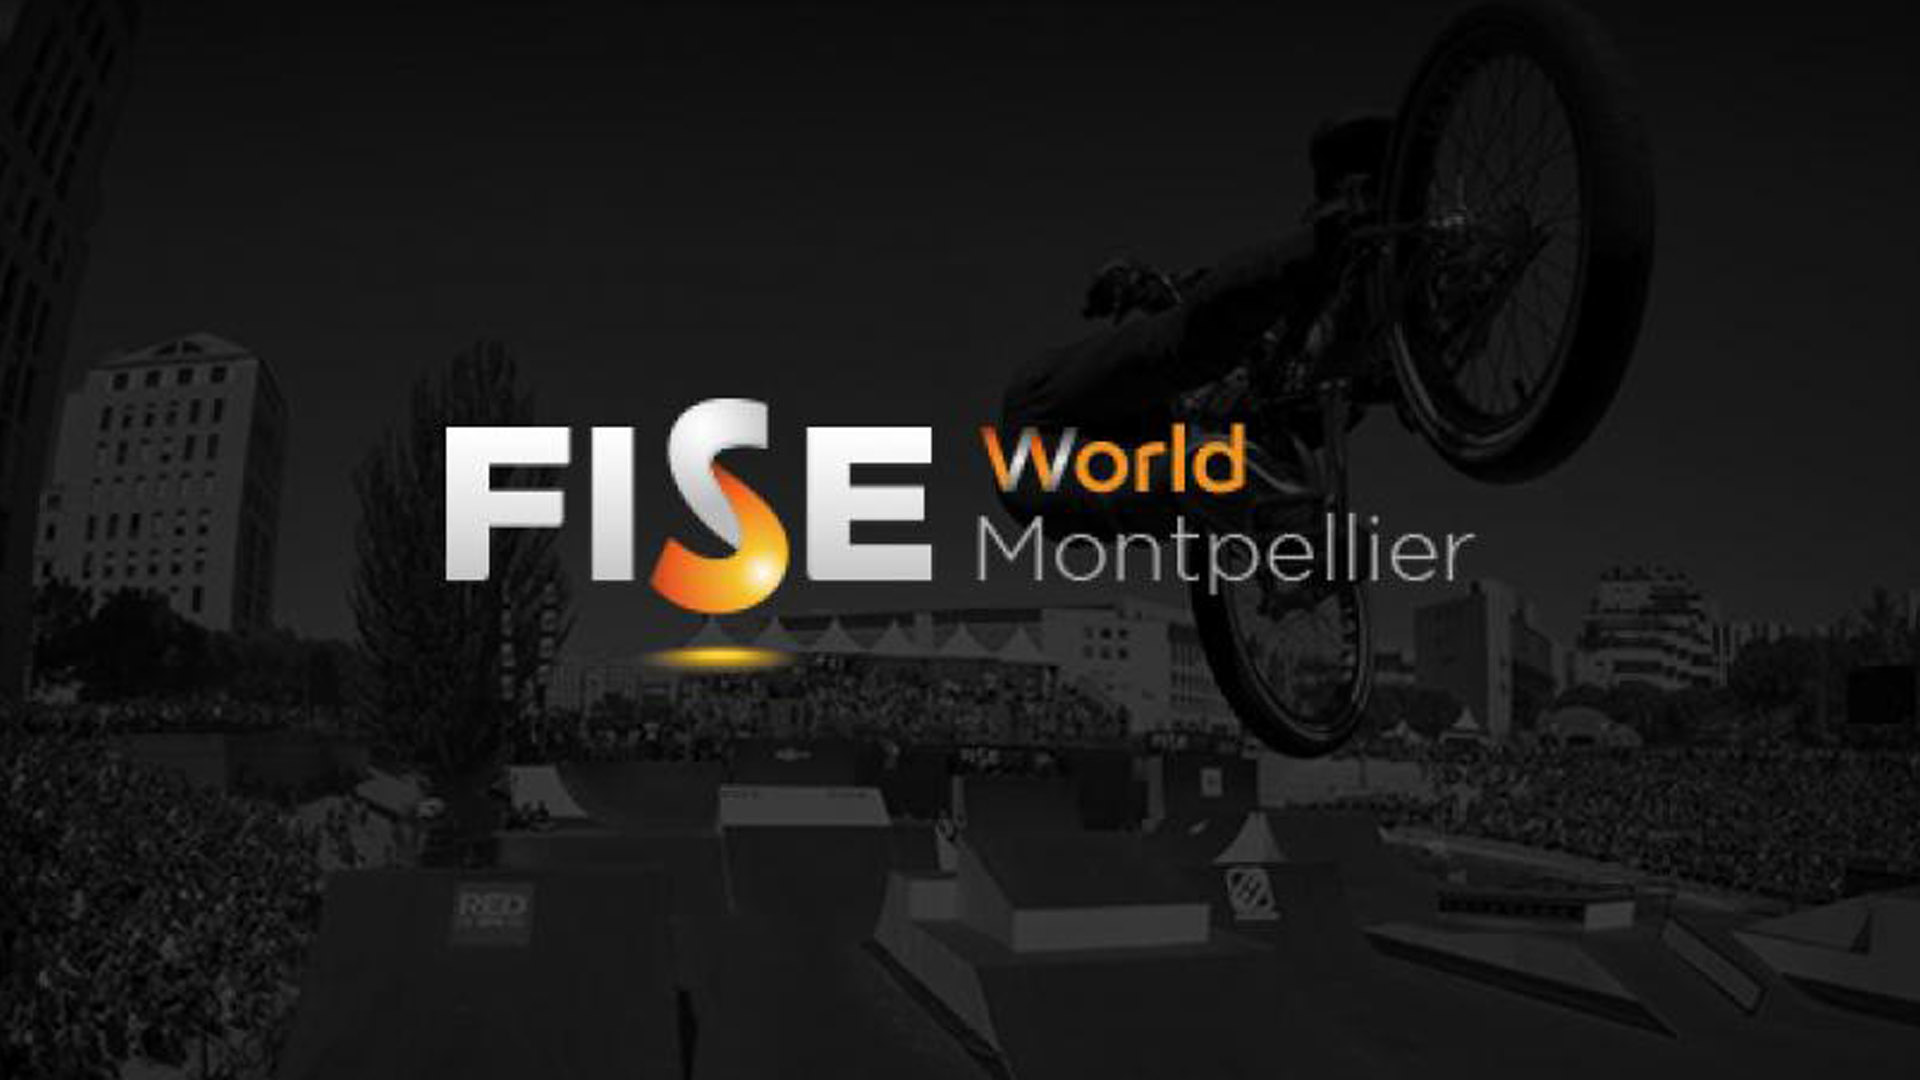 fise-world-montpellier